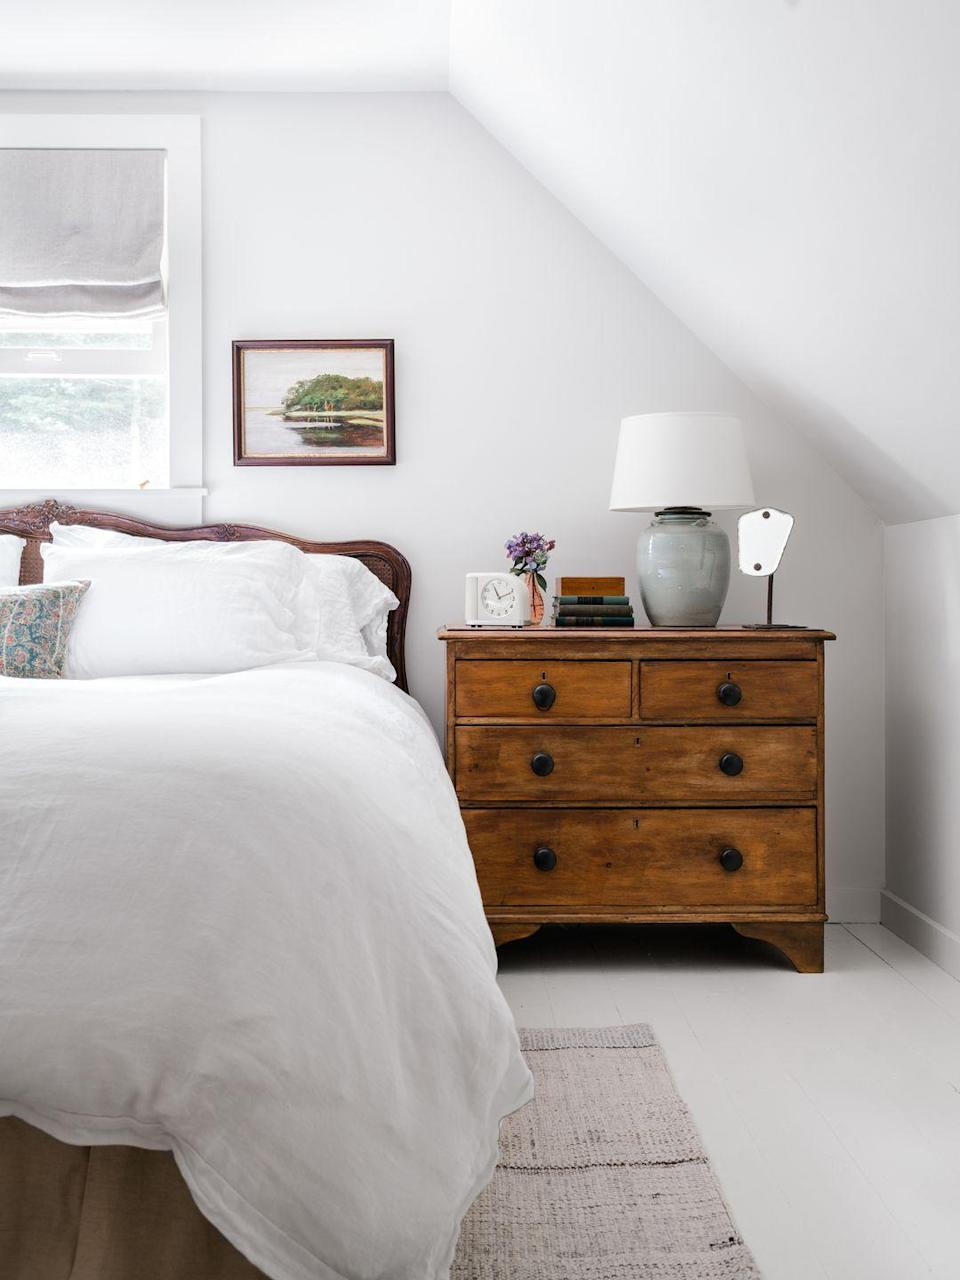 """<p>While we can't all live in a picture-perfect cottage in the mountains, we <em>can</em> channel those vibes through a mix of natural wood, soft linens, and delicate gray wall color. To bring a dose of similar peace and quiet into your own rest space, seek out an ethereal white-gray mix that will highlight the natural light of your room.</p><p><strong>Get the Look:</strong><br>Wall Paint Color: try <a href=""""https://www.benjaminmoore.com/en-us/color-overview/find-your-color/color/2124-70/distant-gray"""" rel=""""nofollow noopener"""" target=""""_blank"""" data-ylk=""""slk:Distant Gray by Benjamin Moore"""" class=""""link rapid-noclick-resp"""">Distant Gray by Benjamin Moore</a></p>"""